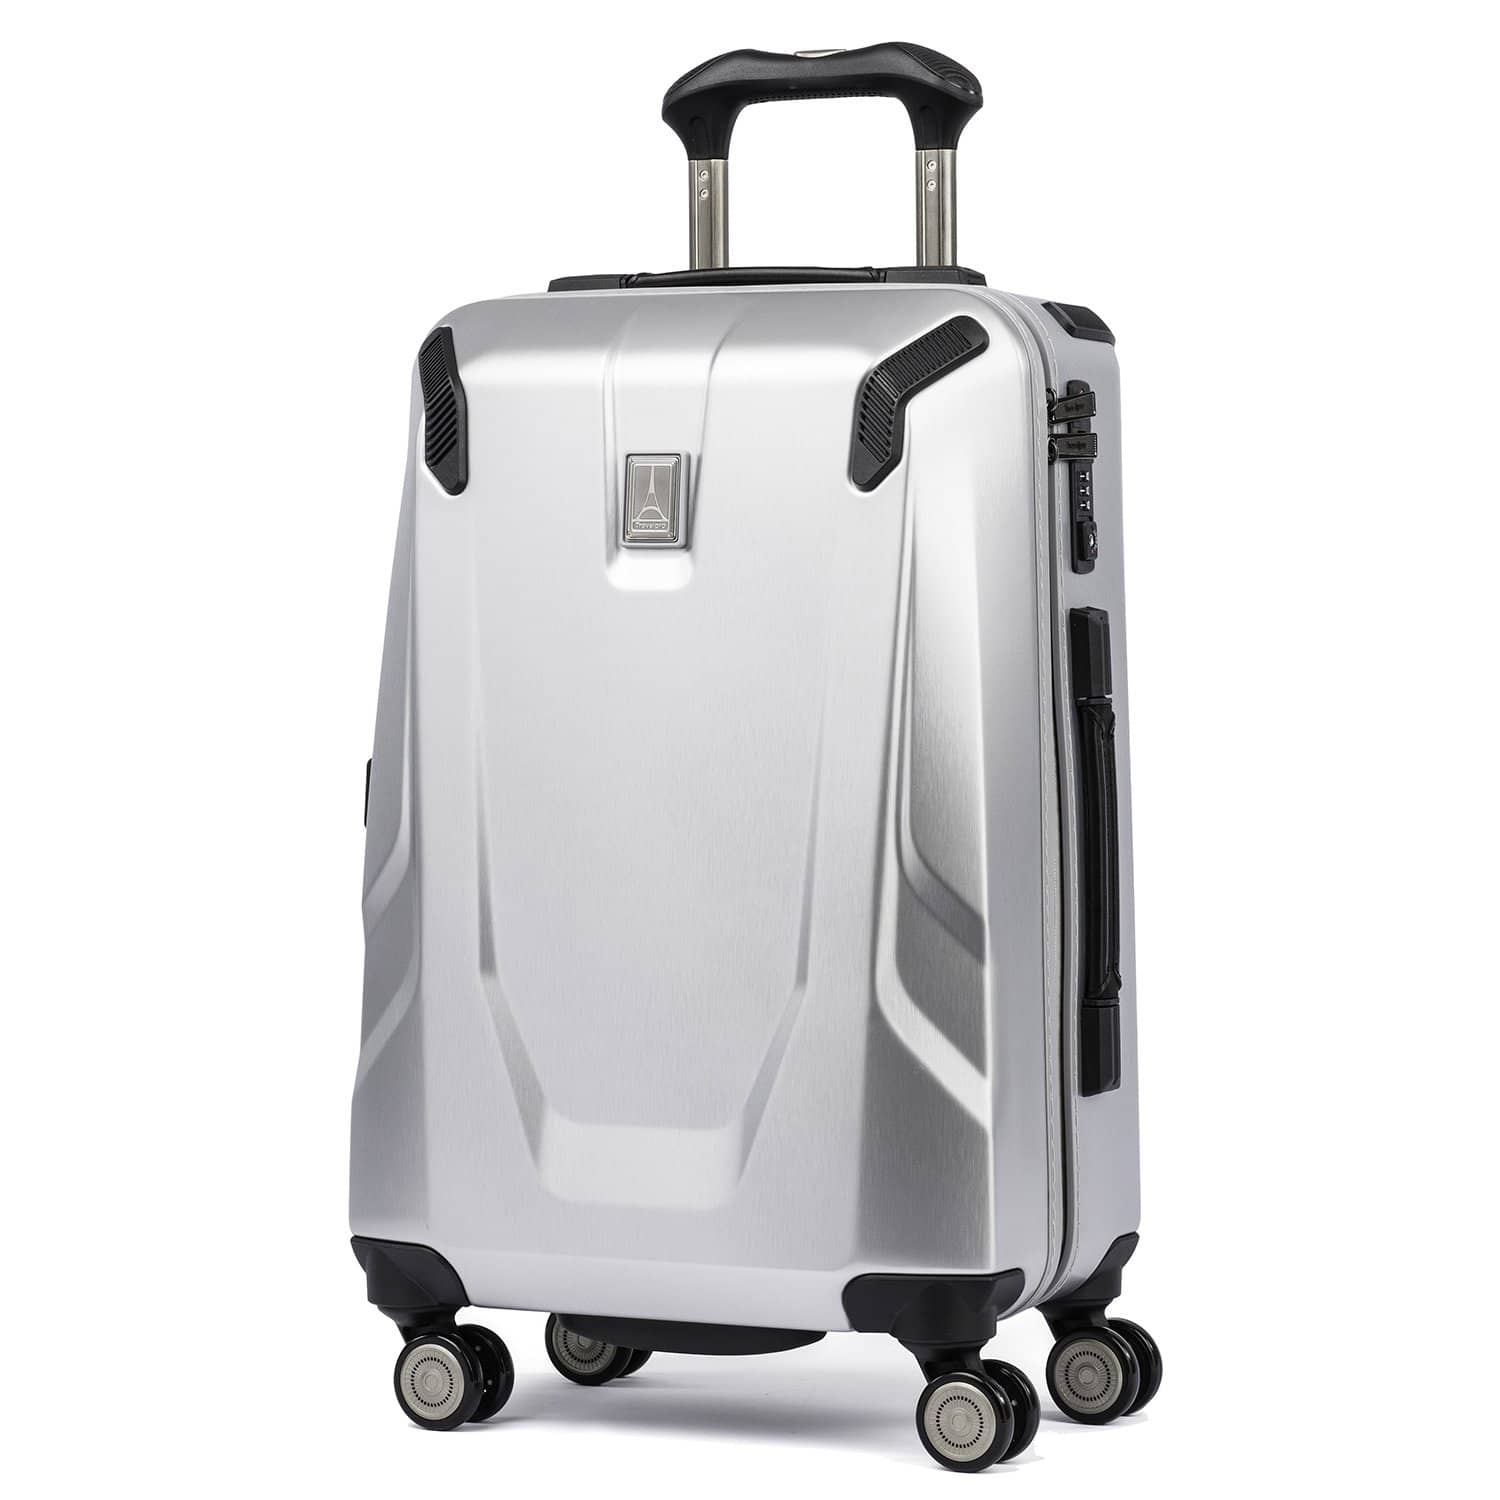 "Travelpro Crew™ 11 21"" Slim Hardside Carry-on Spinner SILVER"